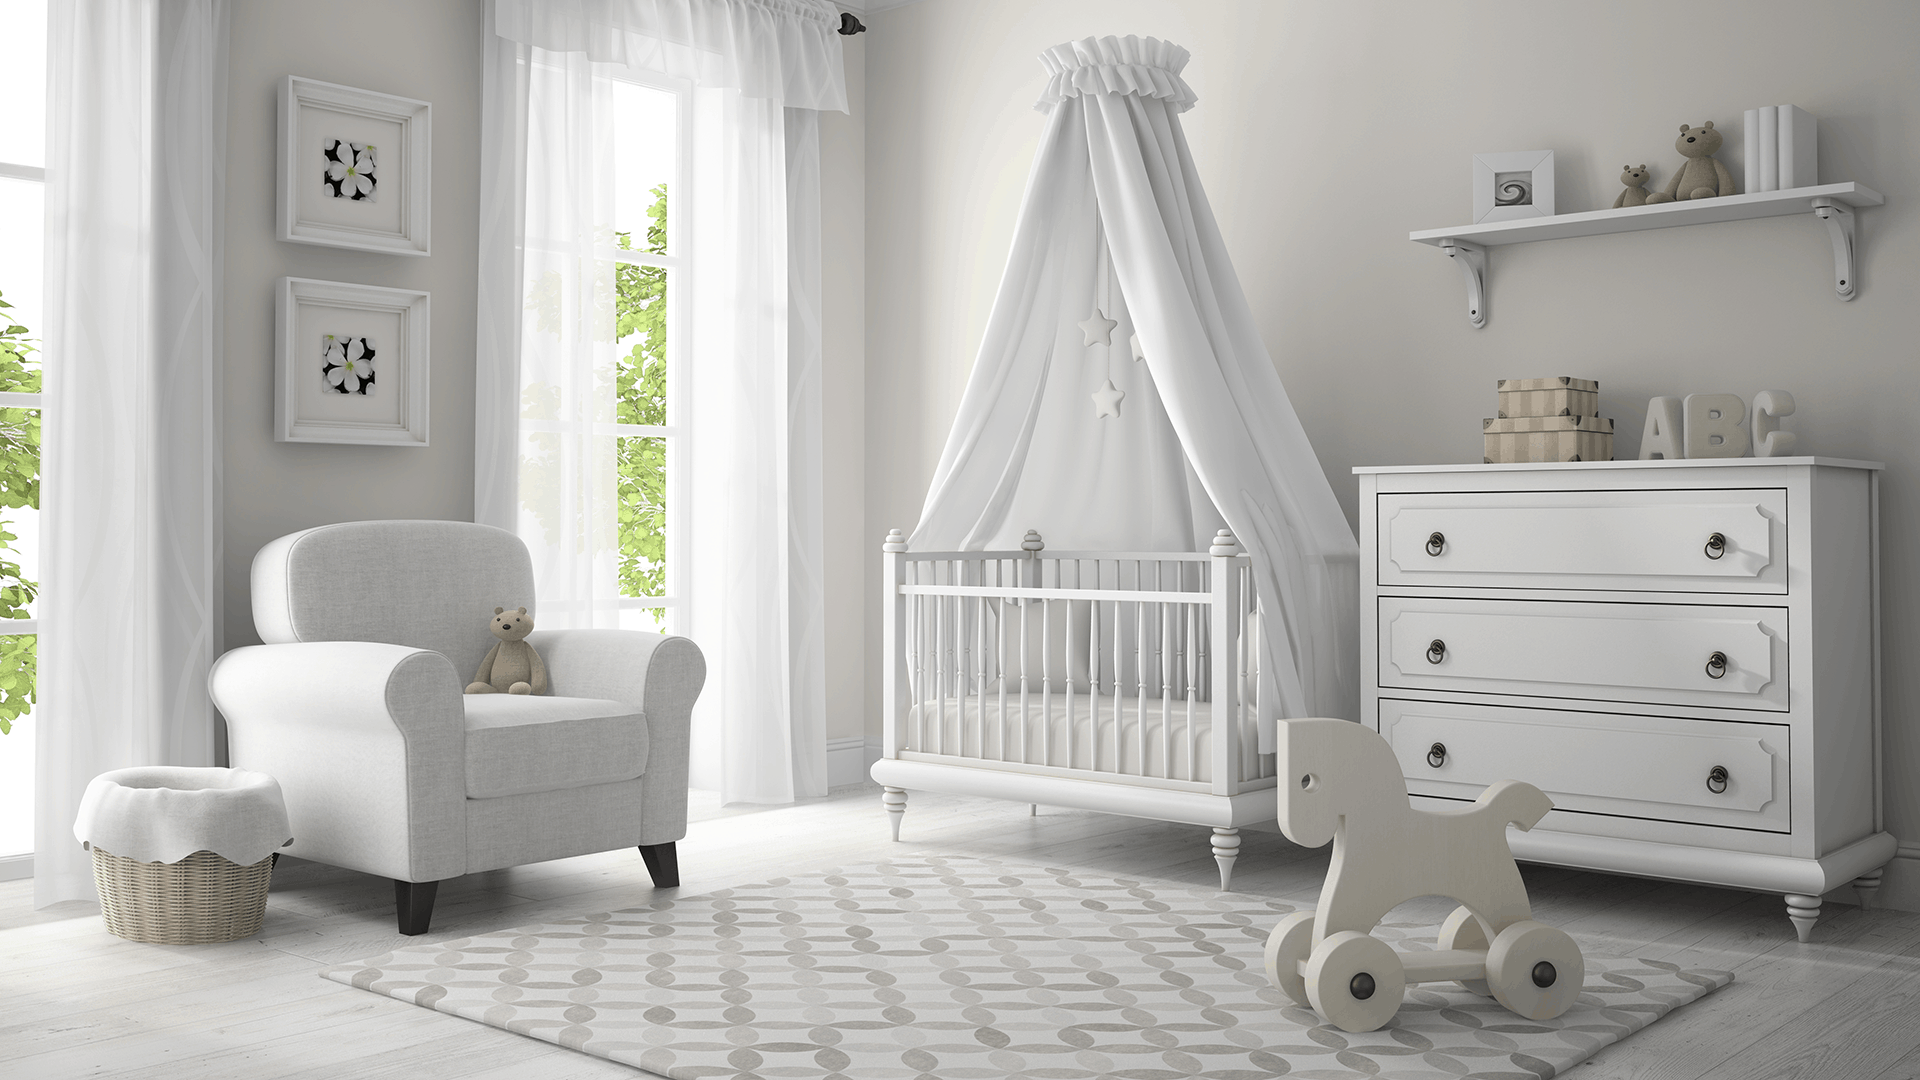 How to Soundproof a Baby Room (Nursery)